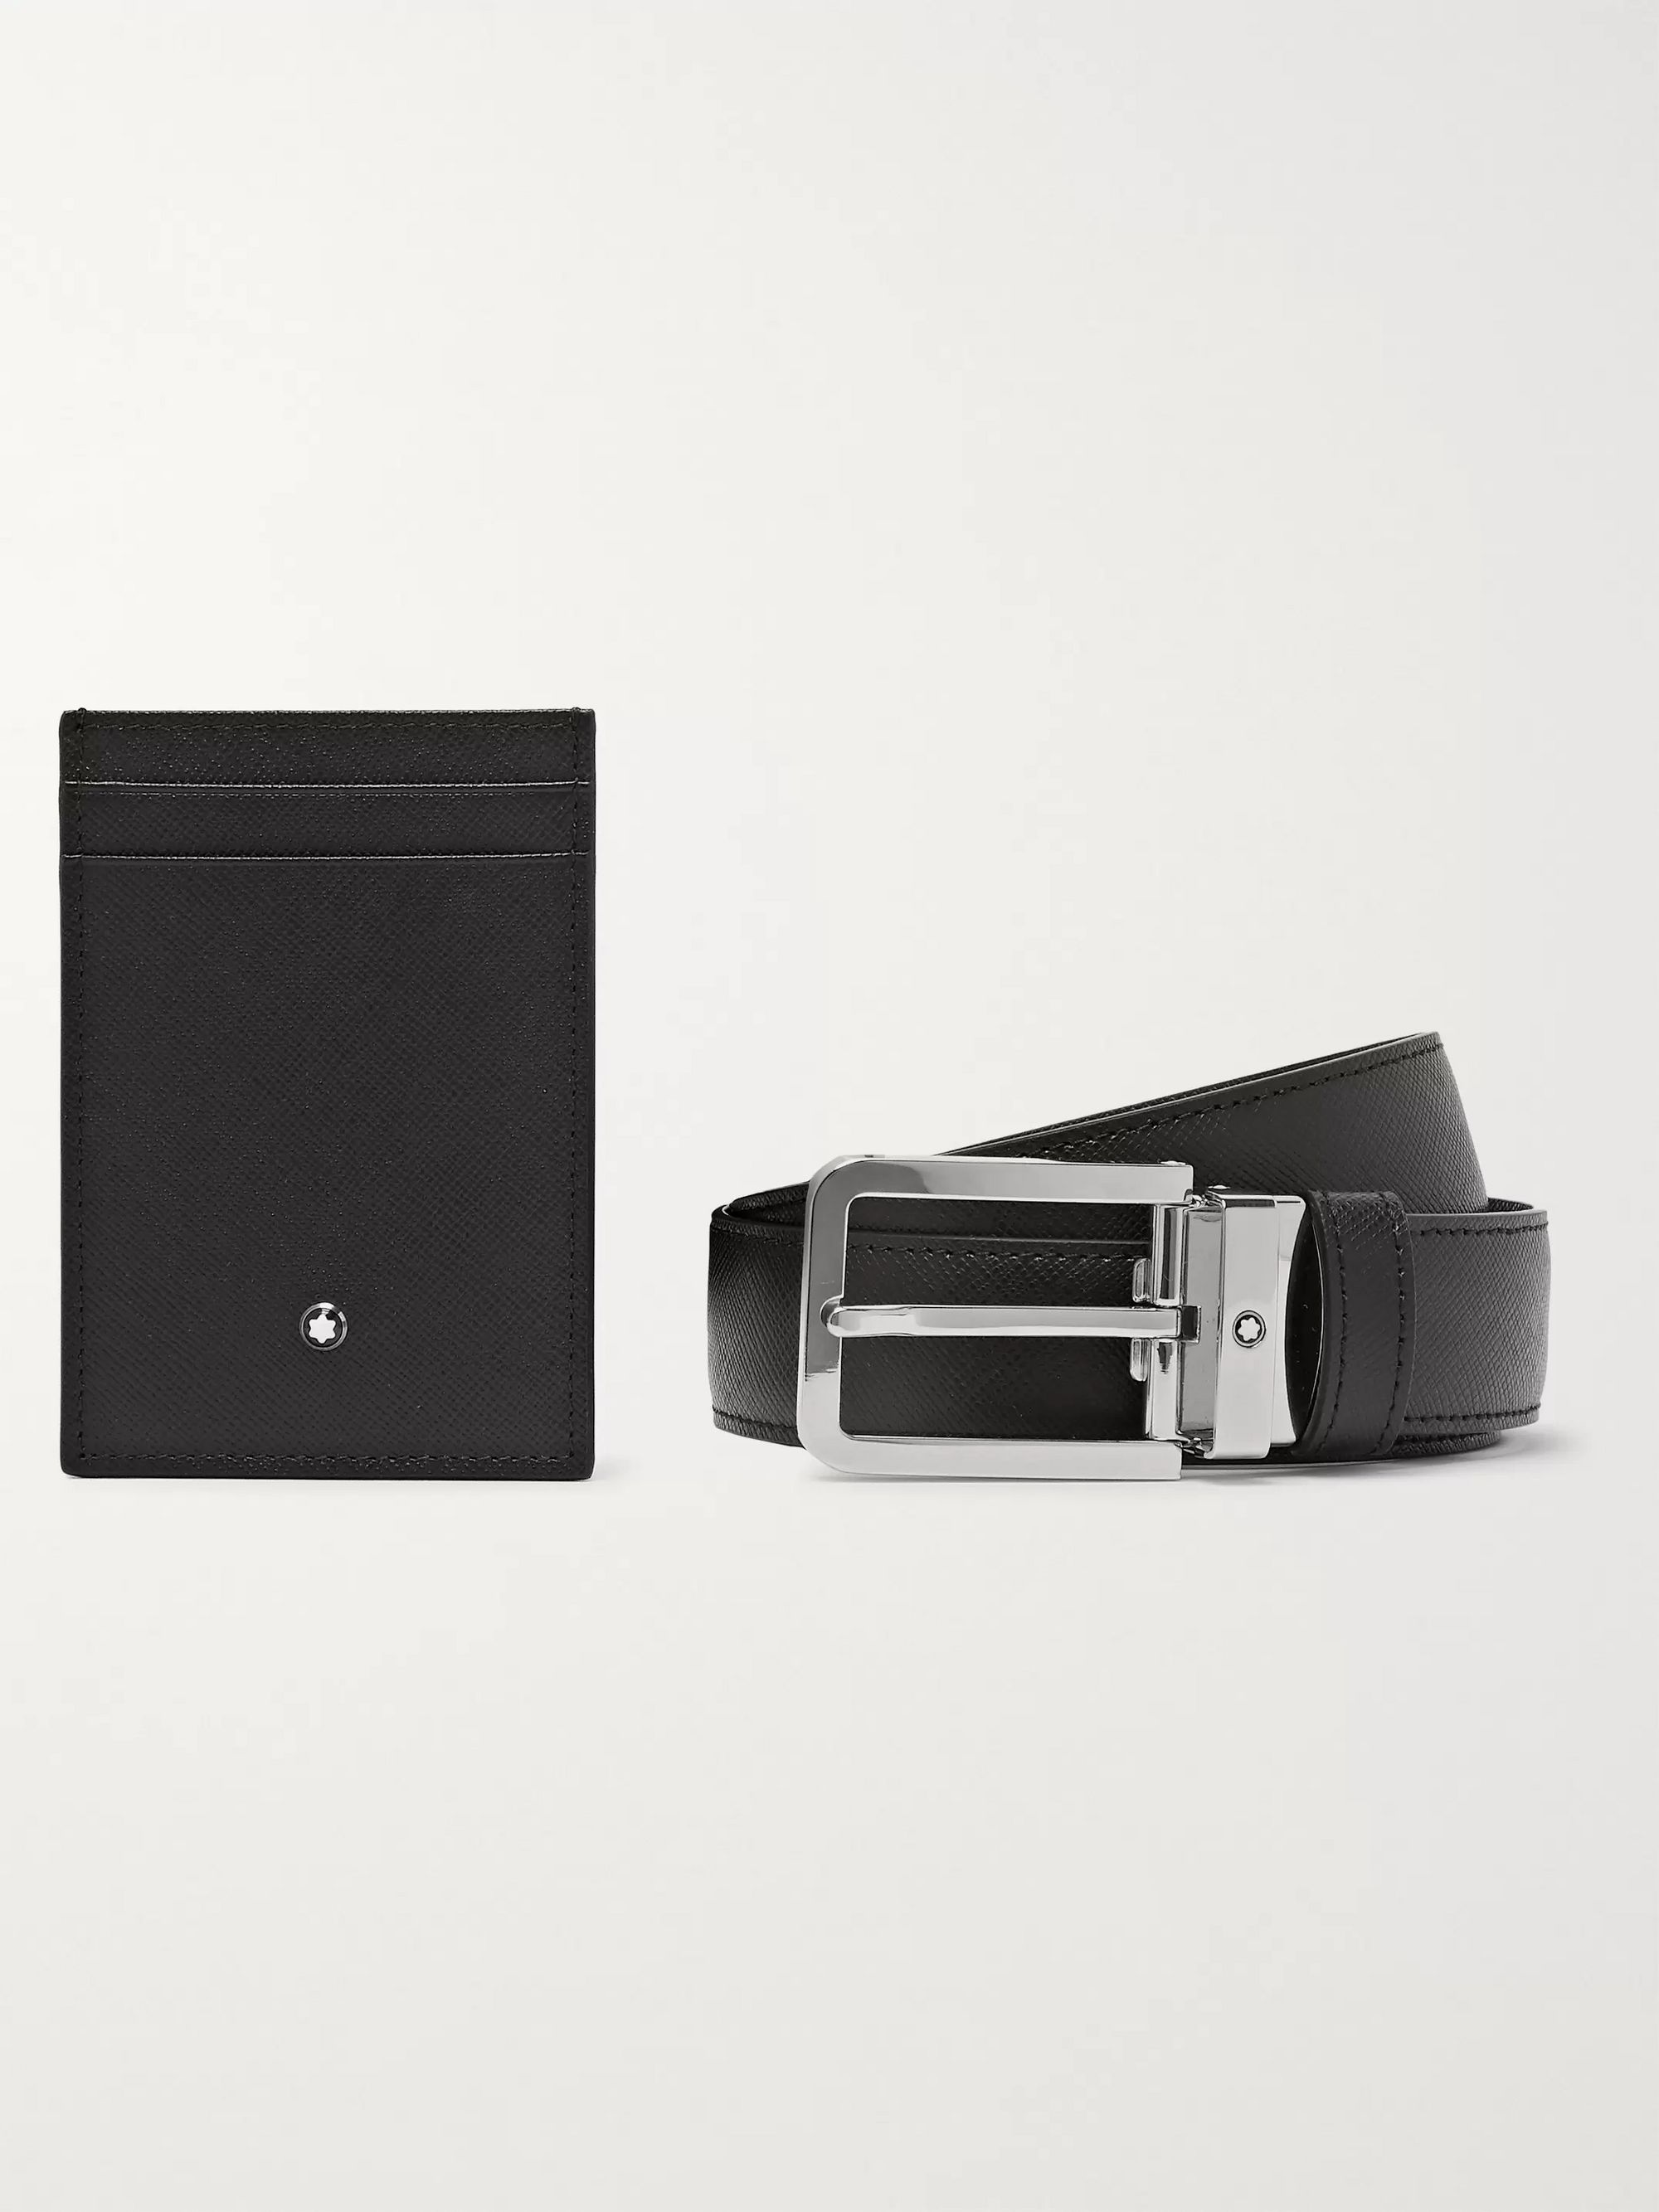 Montblanc Cross-Grain Leather Belt and Cardholder Set